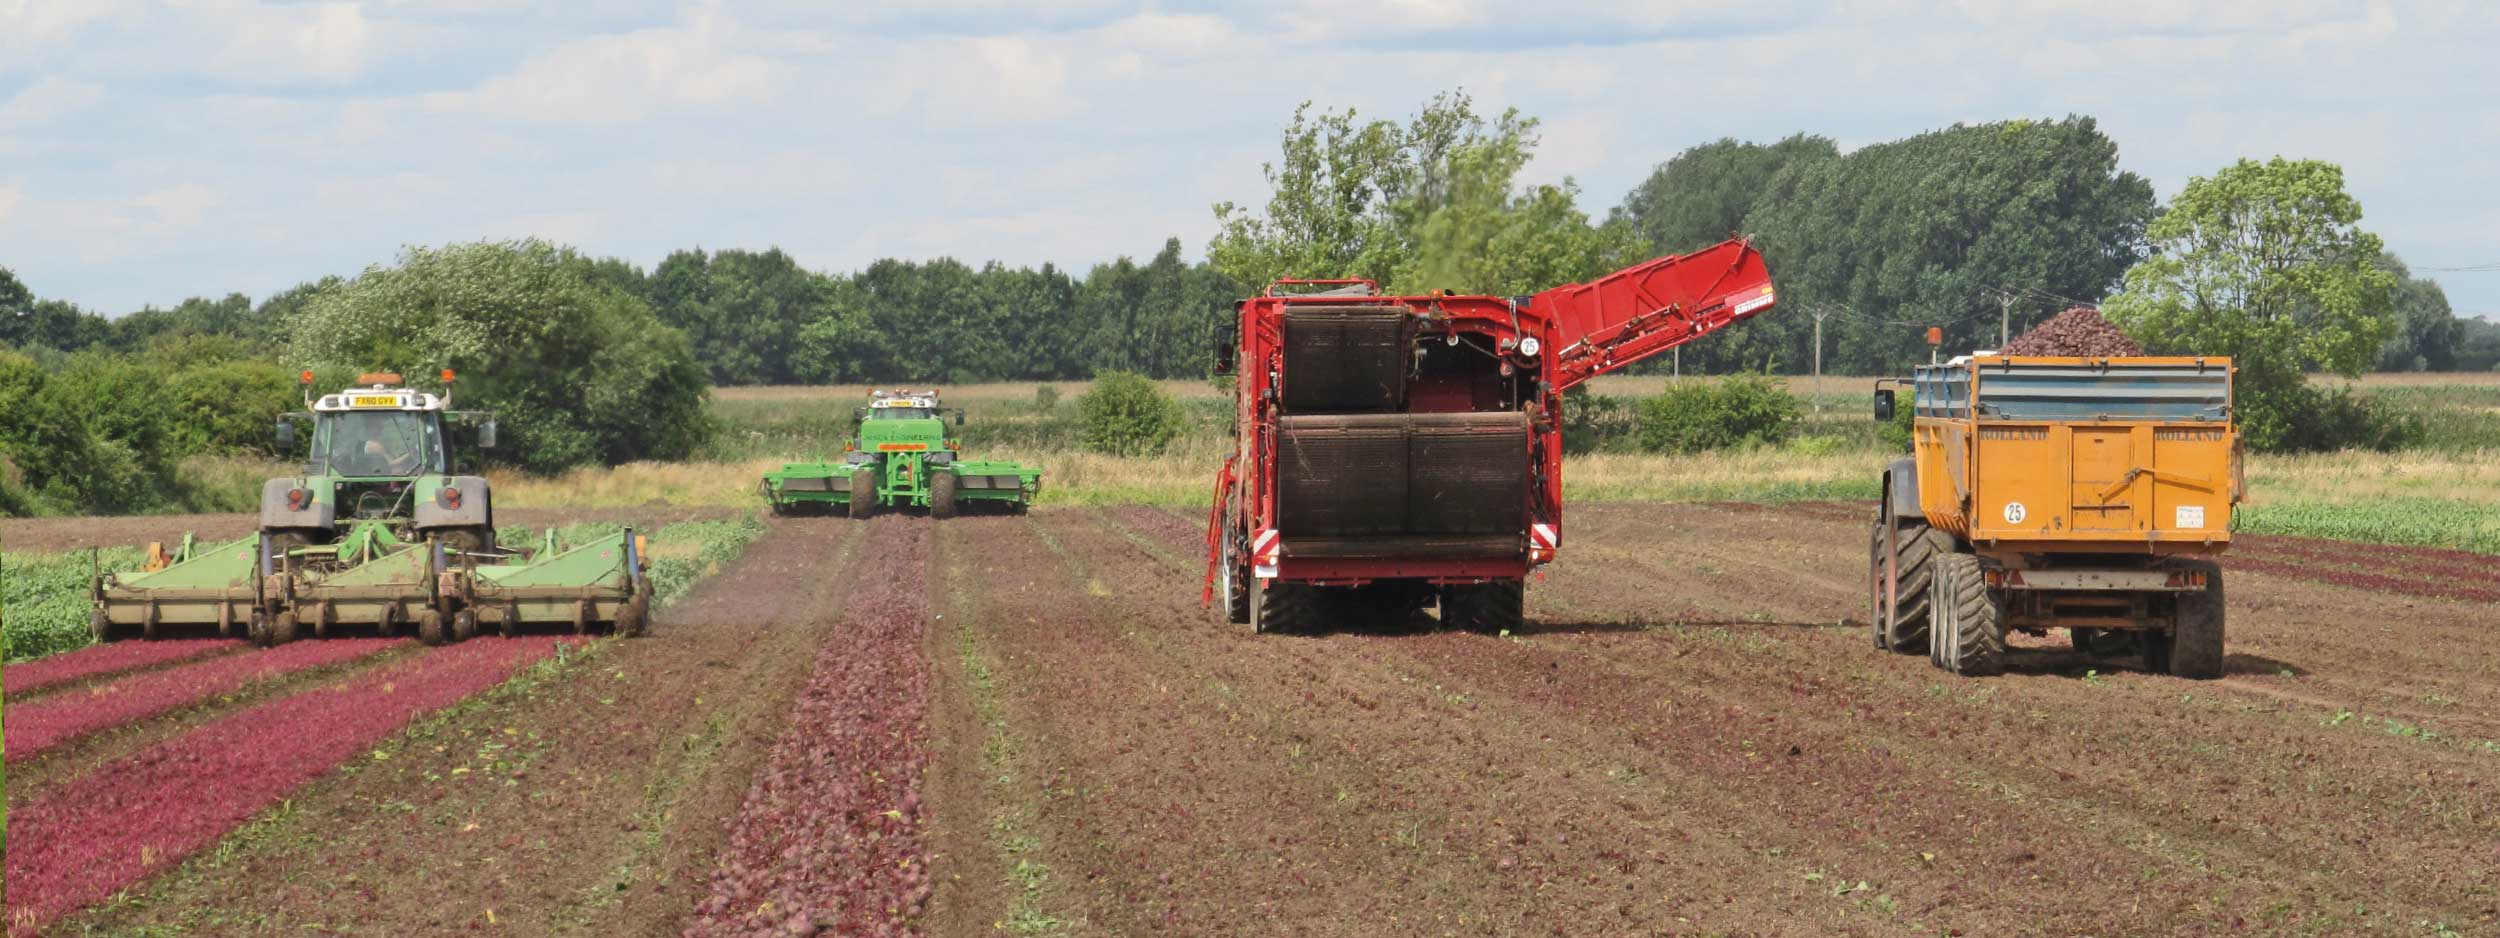 grower and supplier of quality beetroot in Nottinghamshire, England, UK